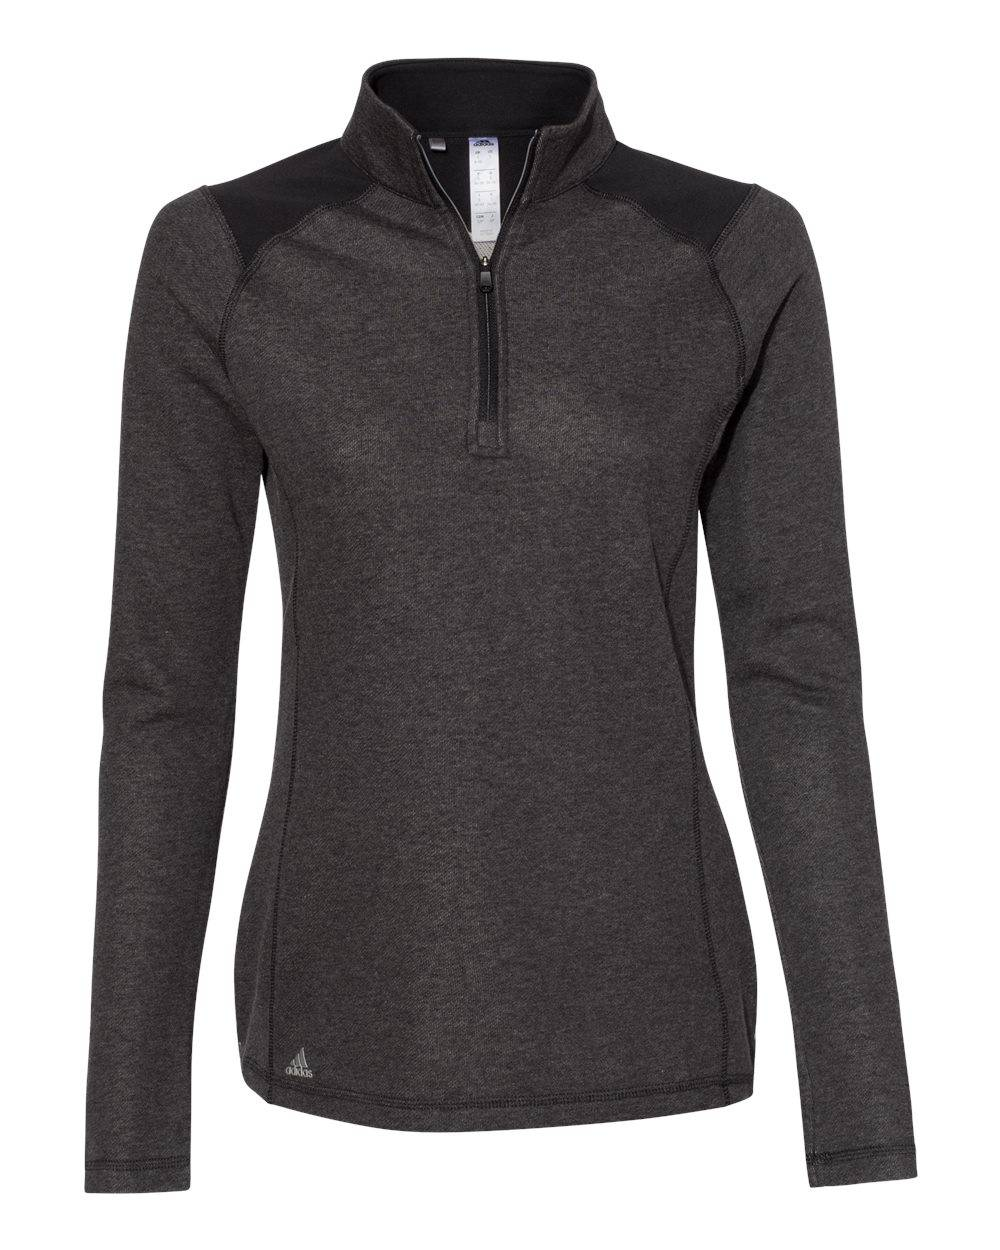 Adidas - Women's Heathered Quarter Zip Pullover with Colorblocked Shoulders - A464 - Black Heather - X-Large